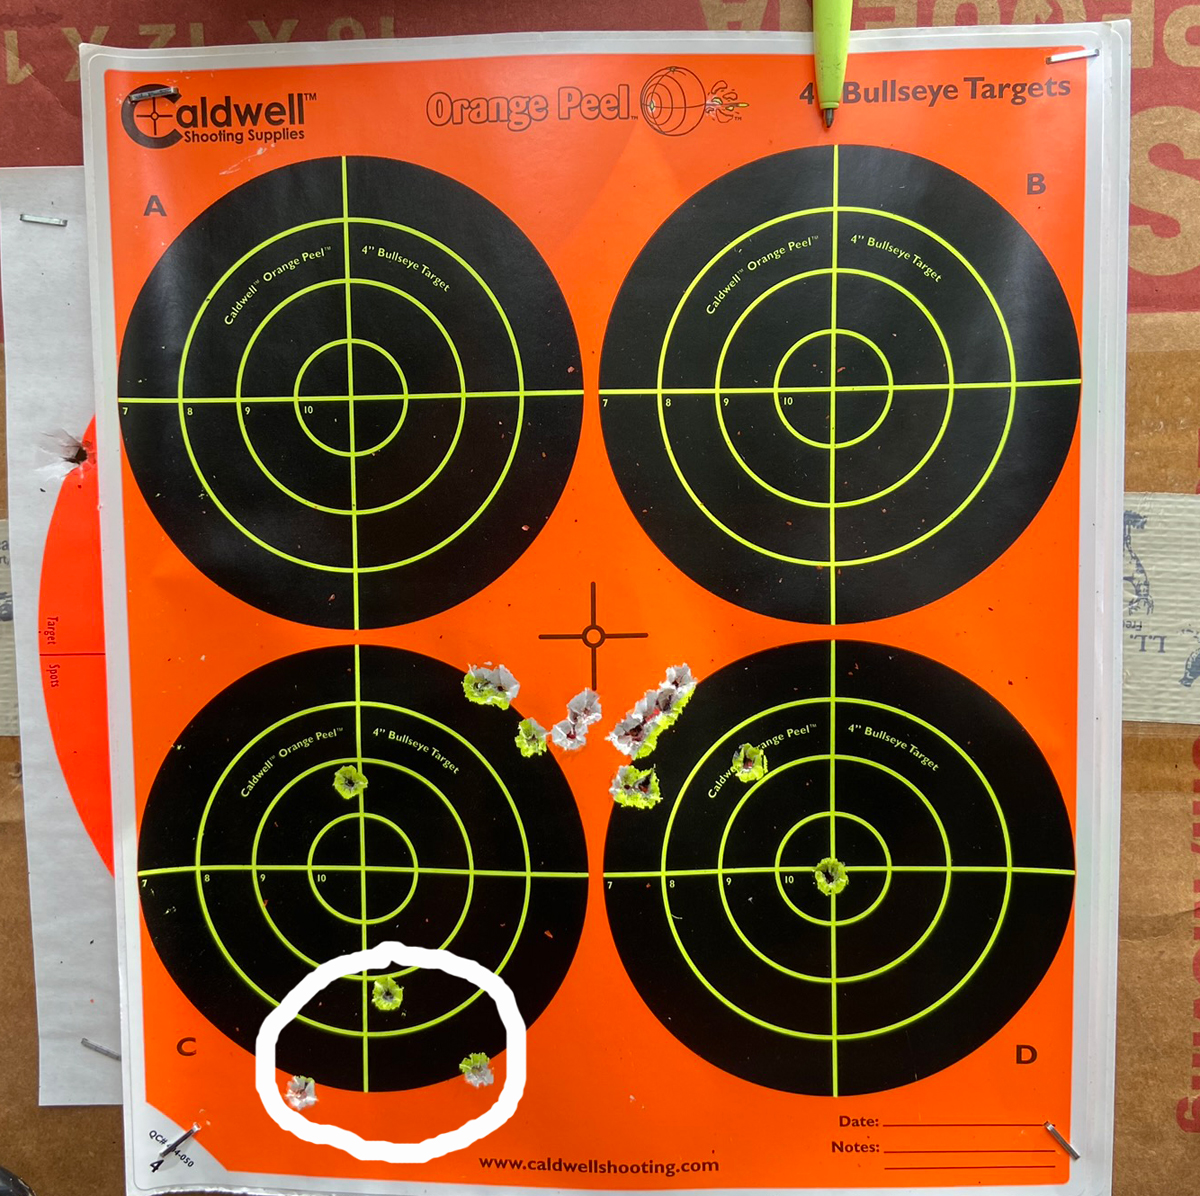 Ignore the three circled bullet holes. Point of aim was top of top right bull as indicated by pen point. (Photo © Russ Chastain)